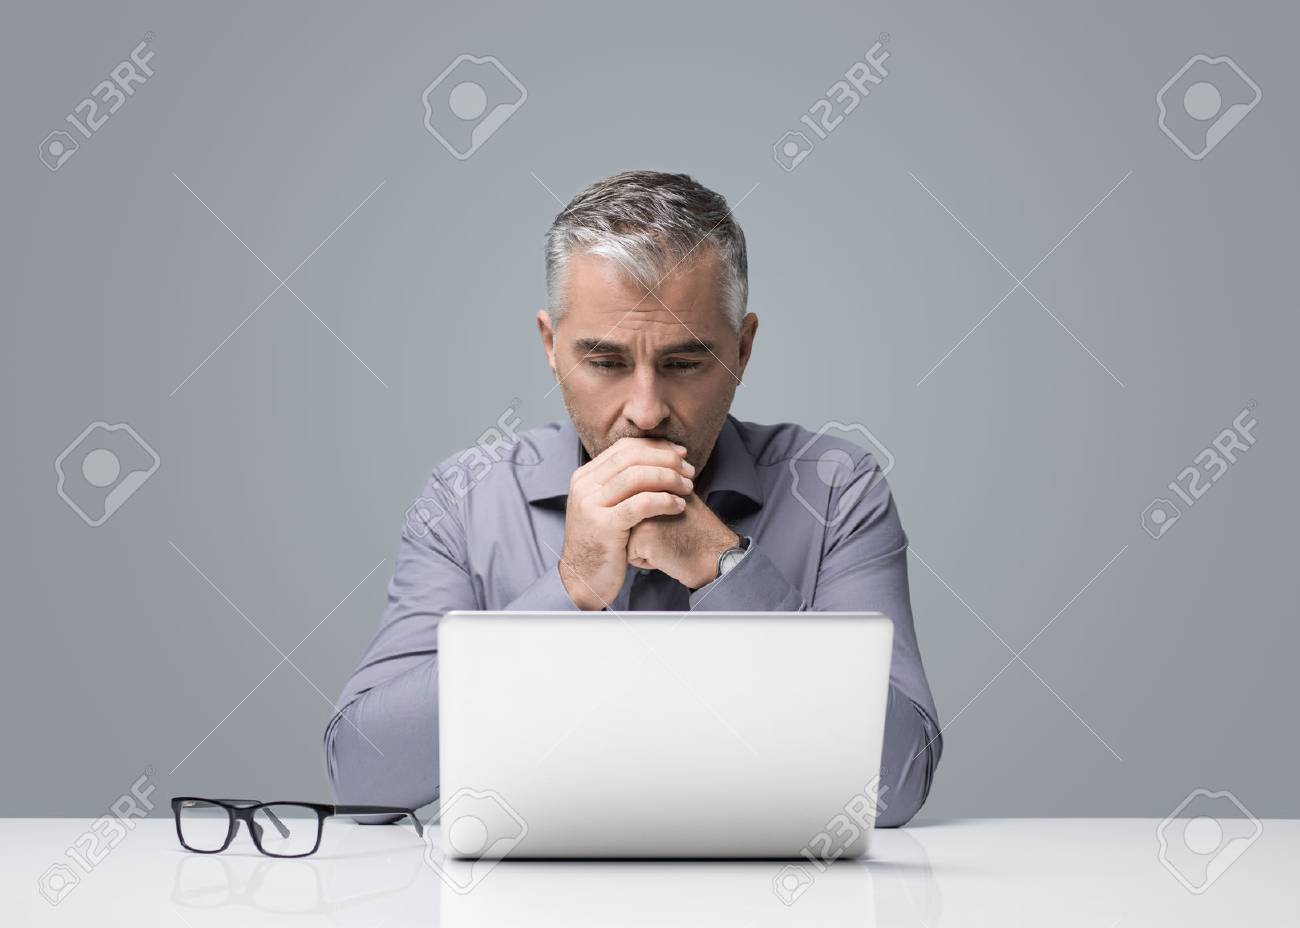 Mature businessman sitting at desk and working with a laptop, he is reading and thinking, business strategies and problem solving concept - 91424987